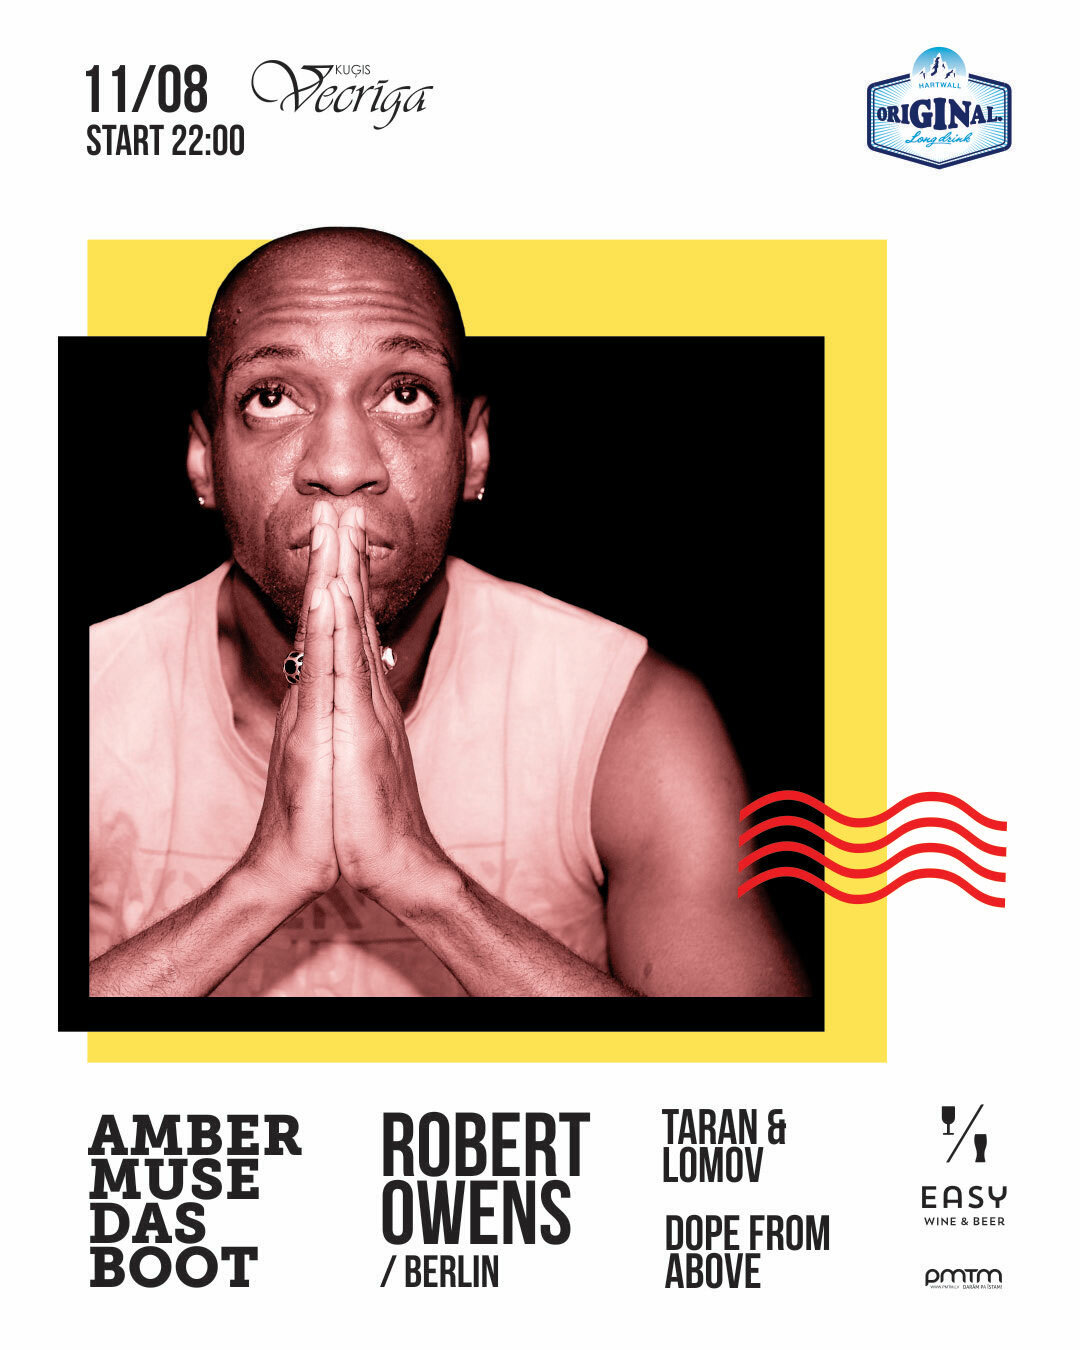 EVENT: Das Boot with Robert Owens / 11 Aug